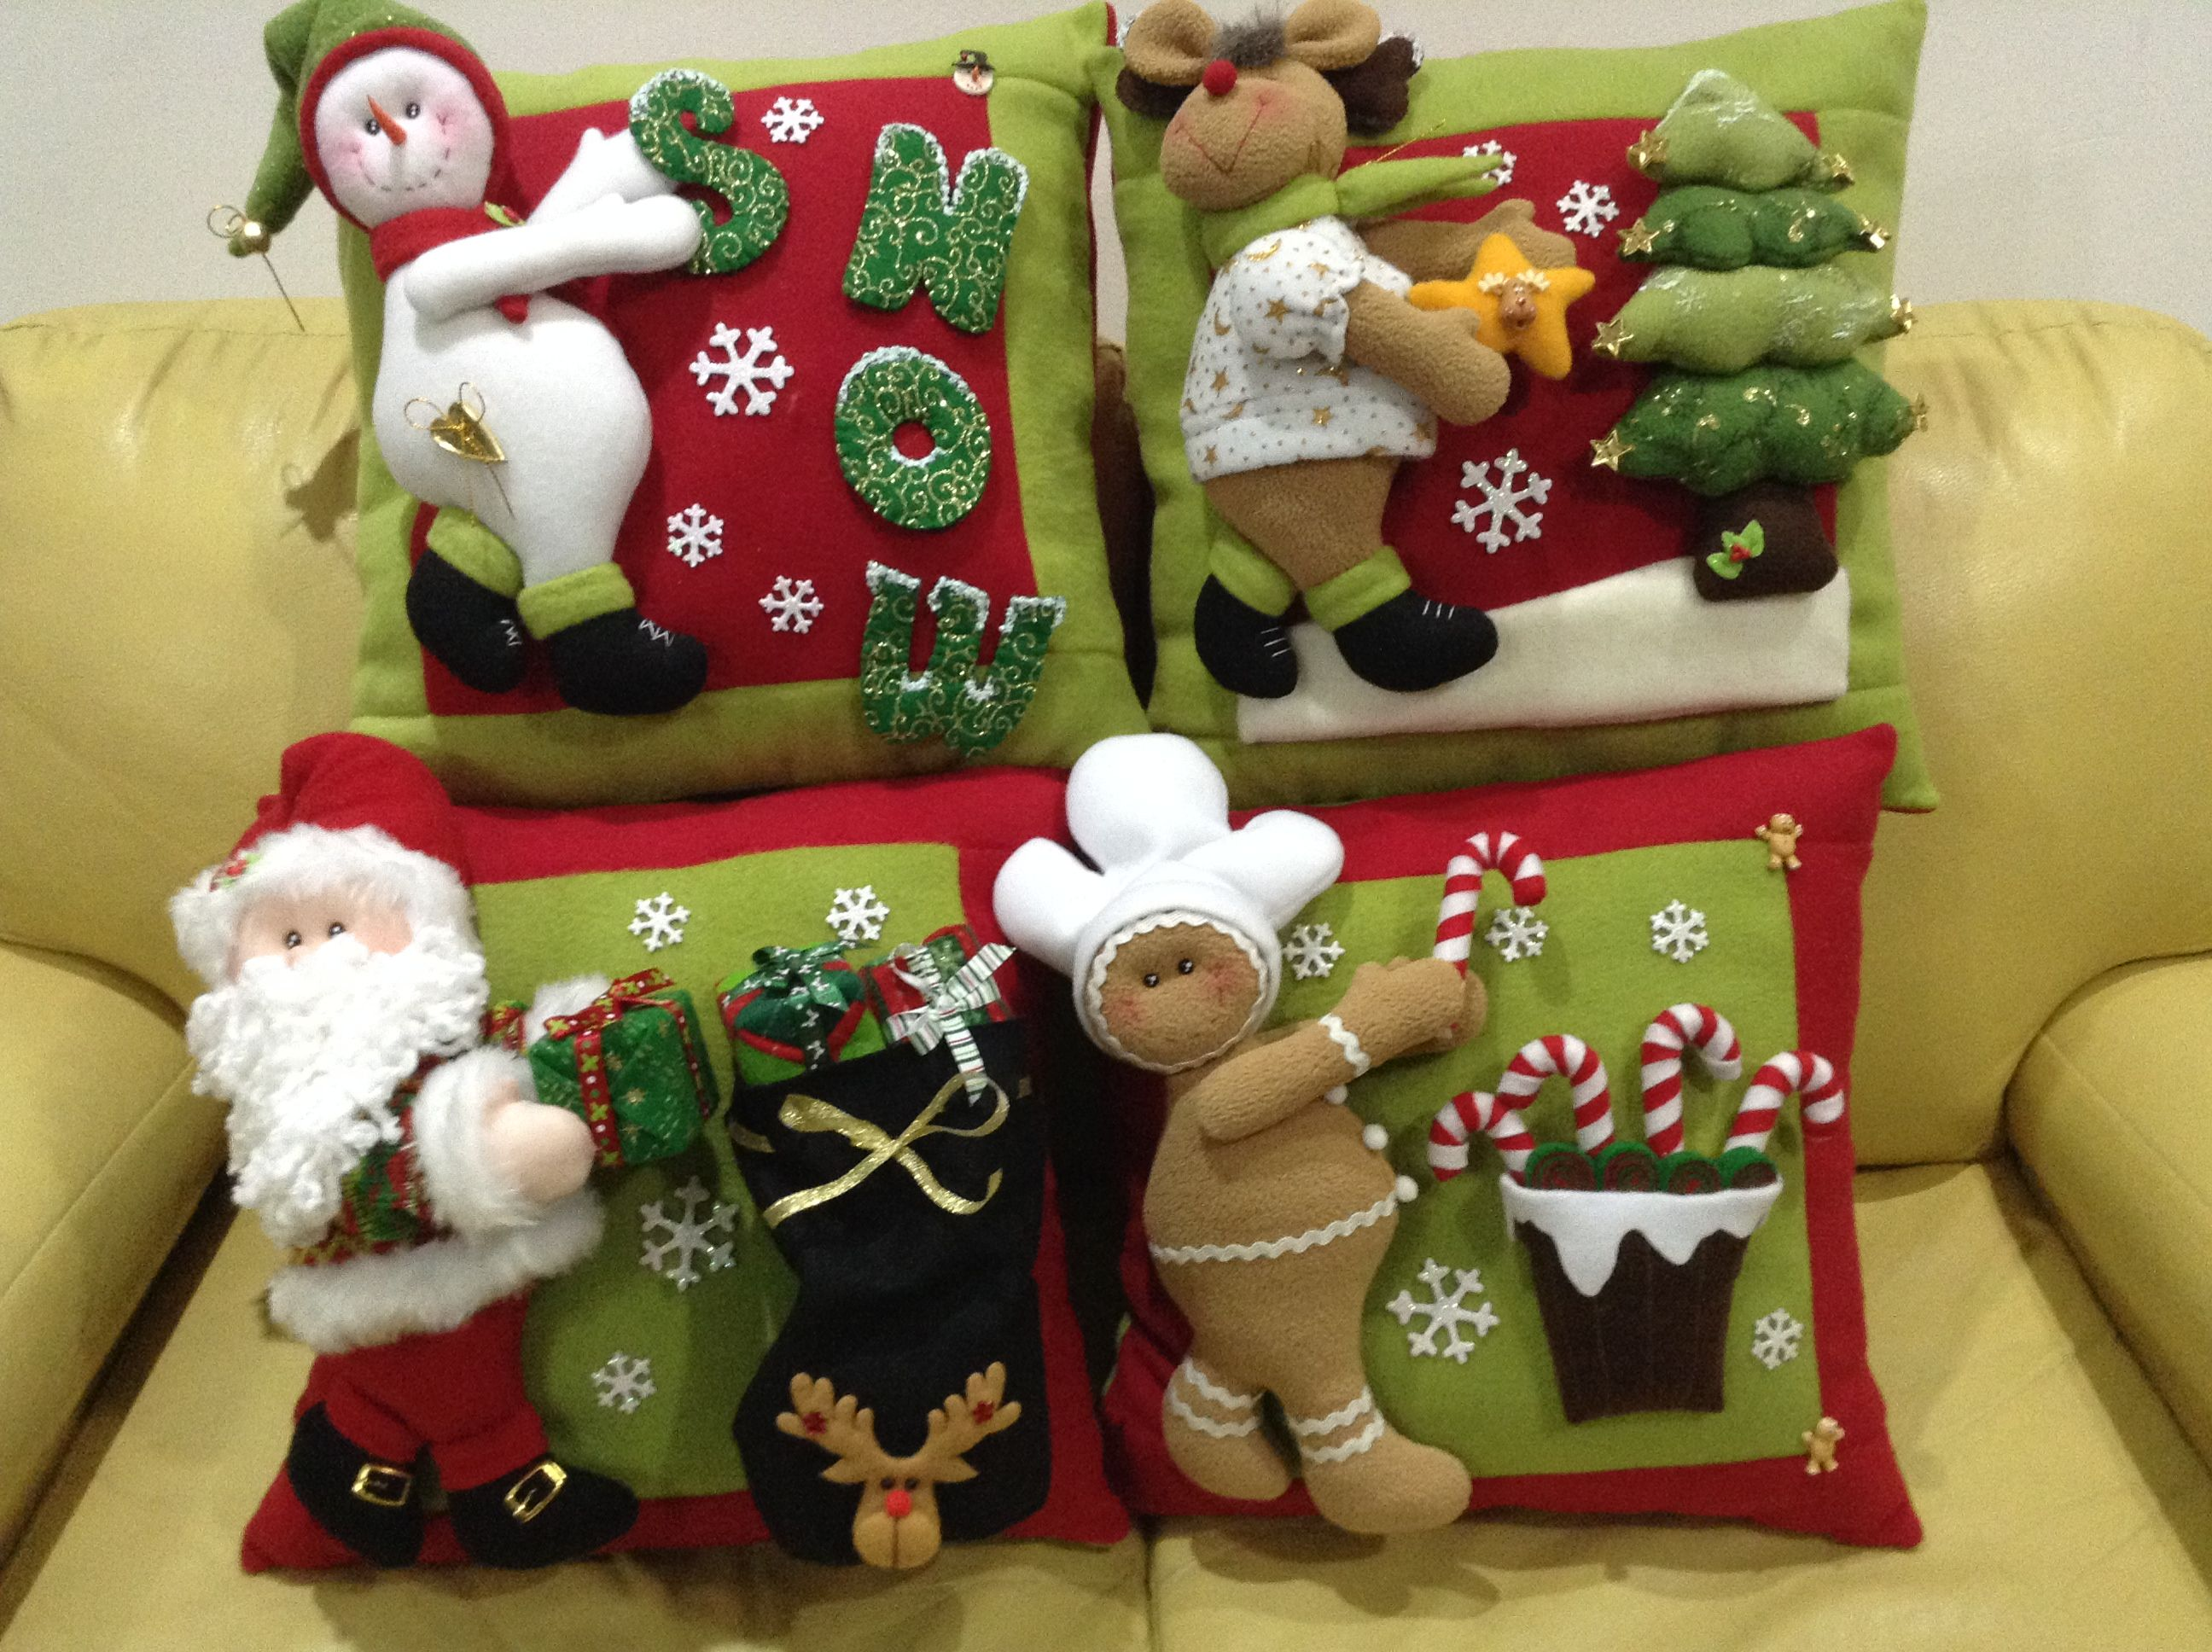 4 cushions models handmade from scratch 4 modelos de cojines hechos a mano more info navidana - Cojines hechos a mano ...